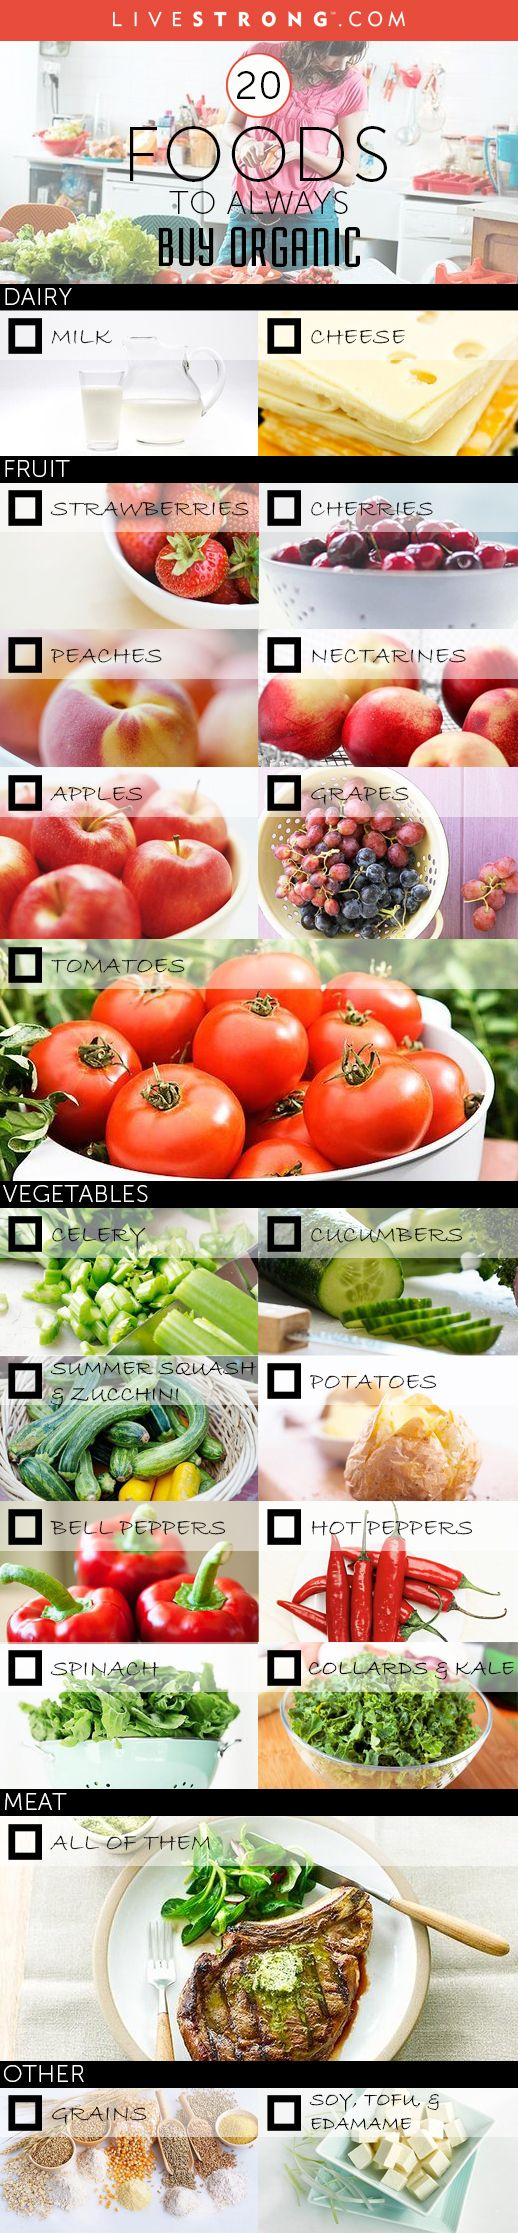 20 Foods to Always Buy Organic (Even If You're On a Budget!)  http://www.livestrong.com/slideshow/1004202-20-foods-always-buy-organic-even-youre-budget/